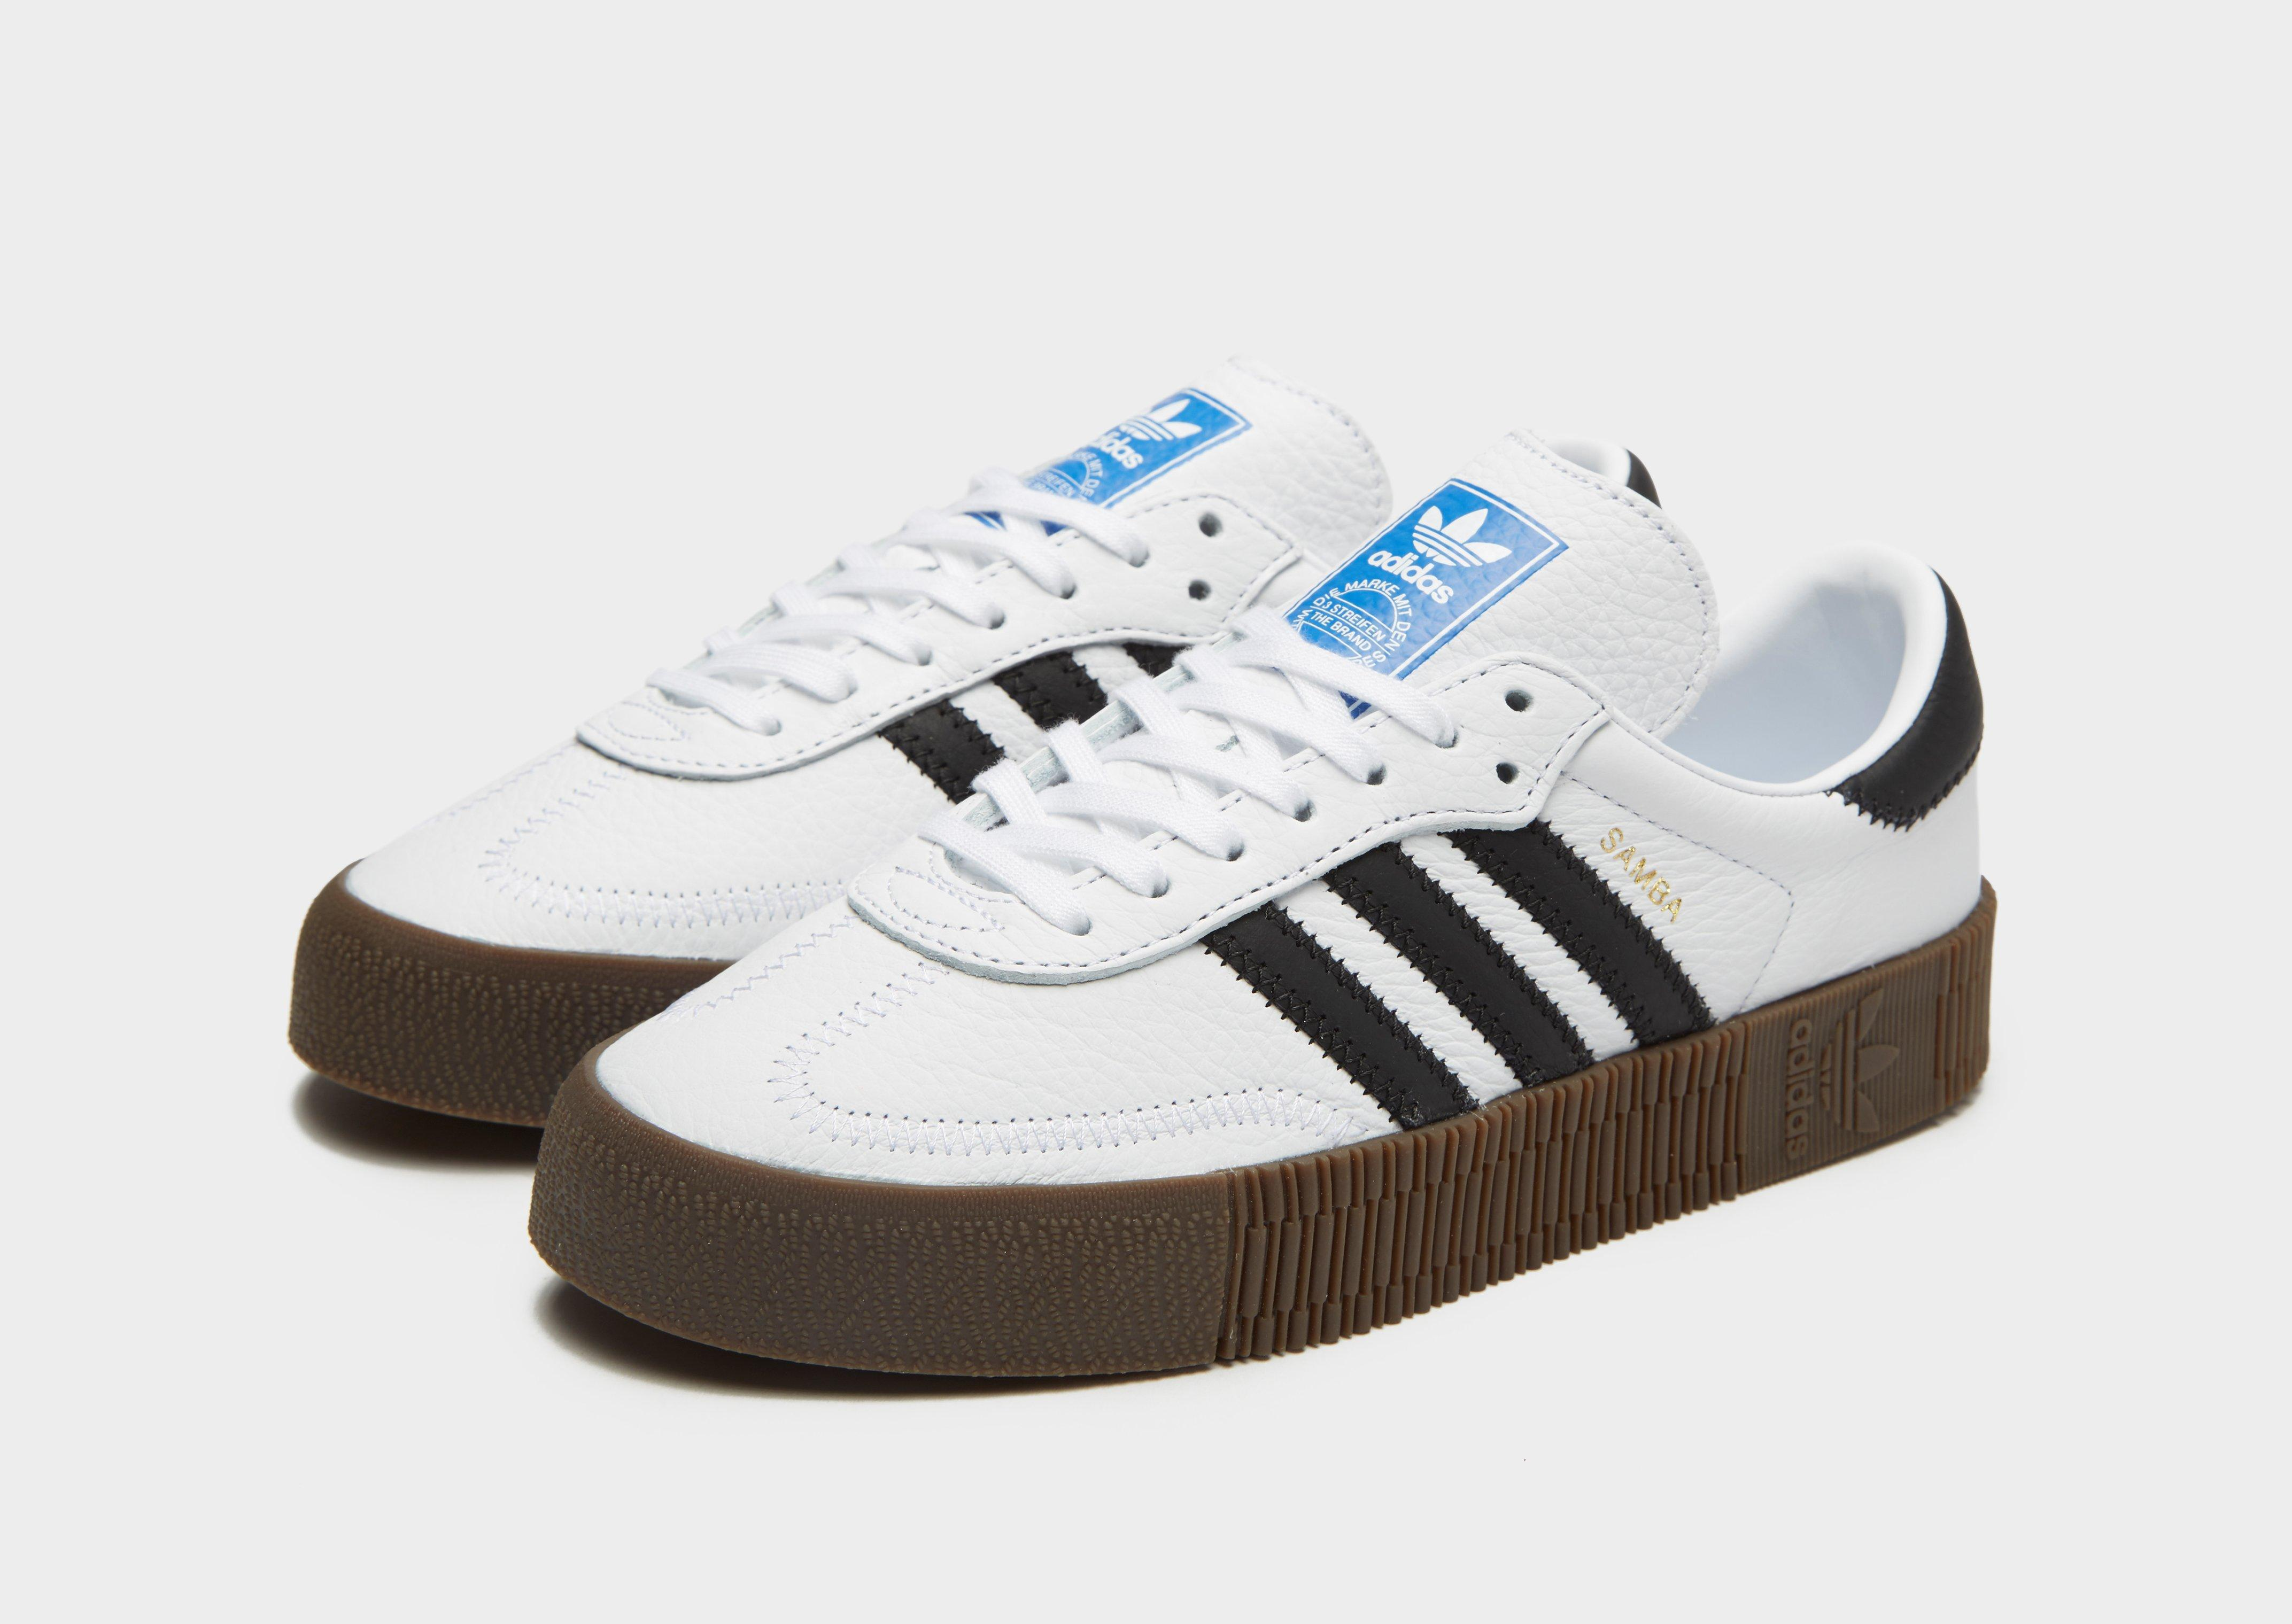 6dfd7493cdae Gallery. Previously sold at  JD Sports · Men s Adidas ...